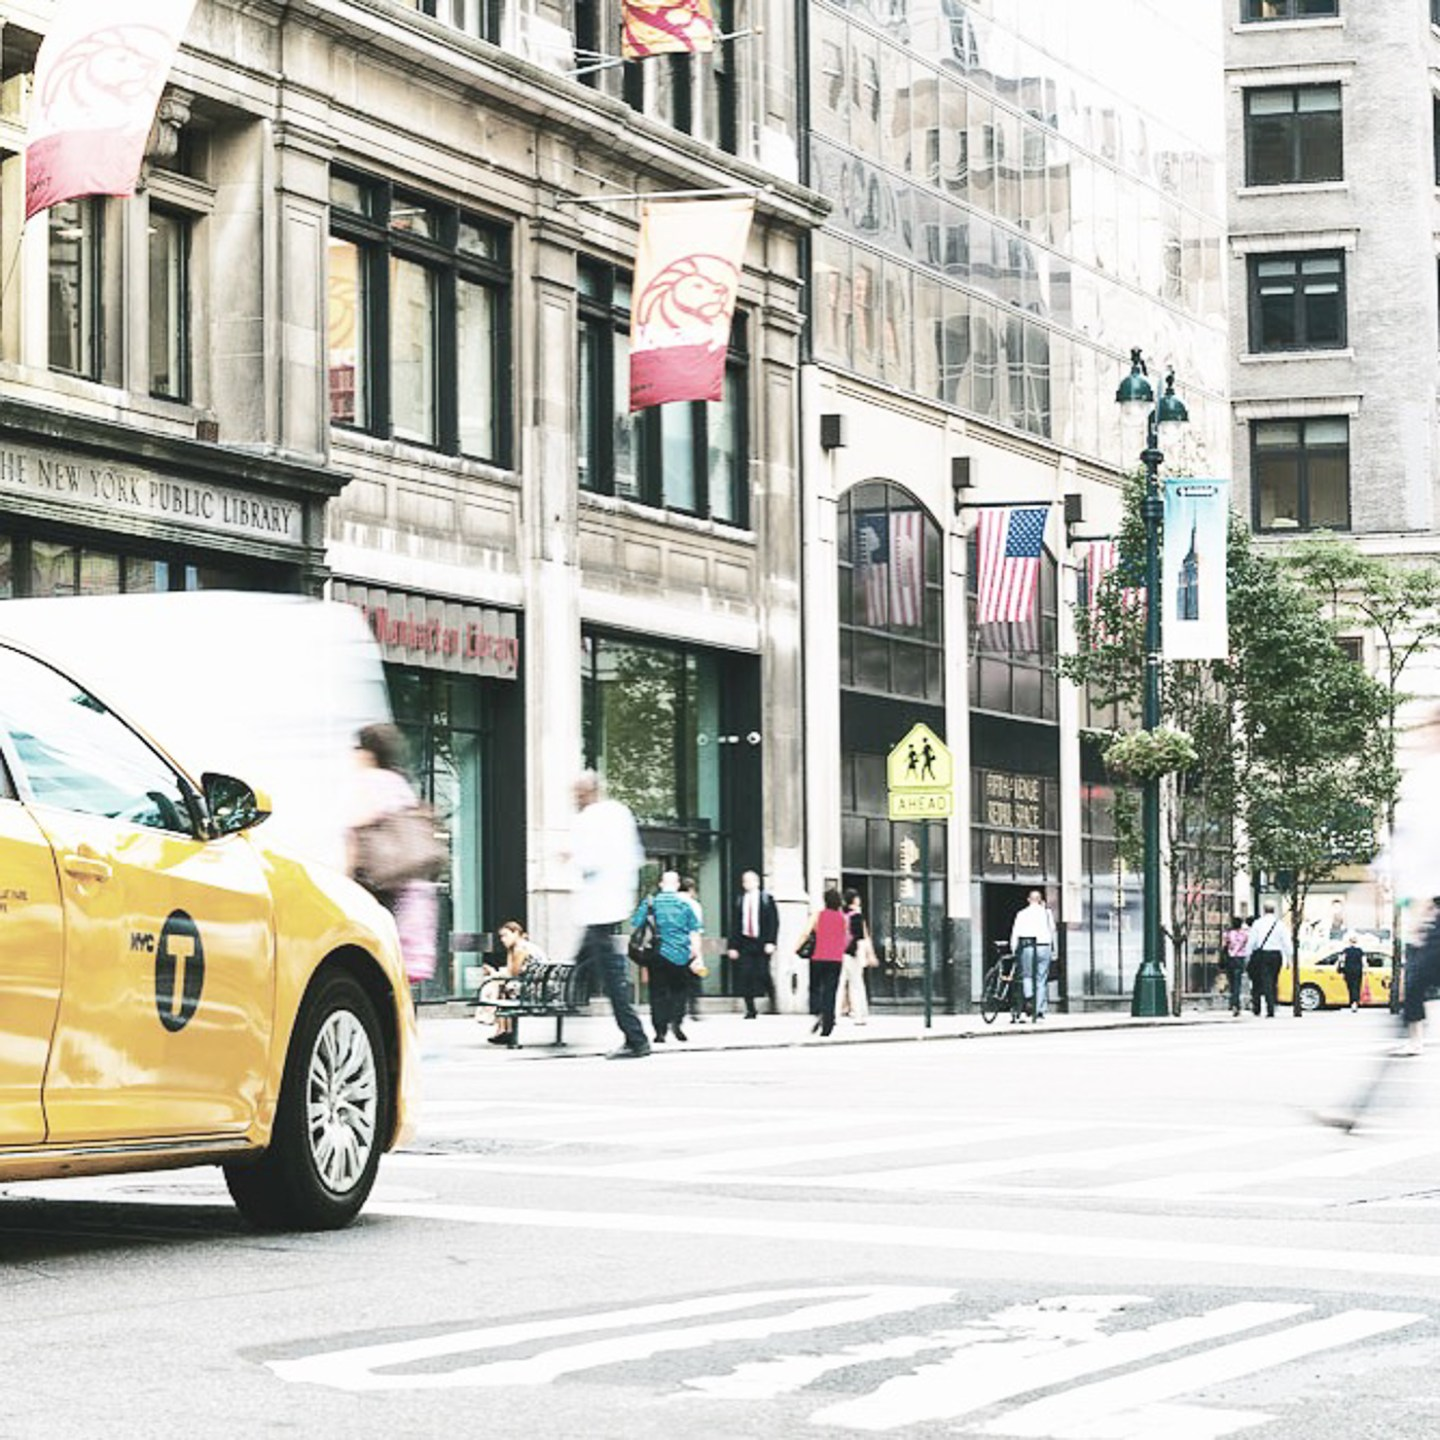 new-york-city-street-shot-nyc-yellow-cab-wishes-and-reality-instagram